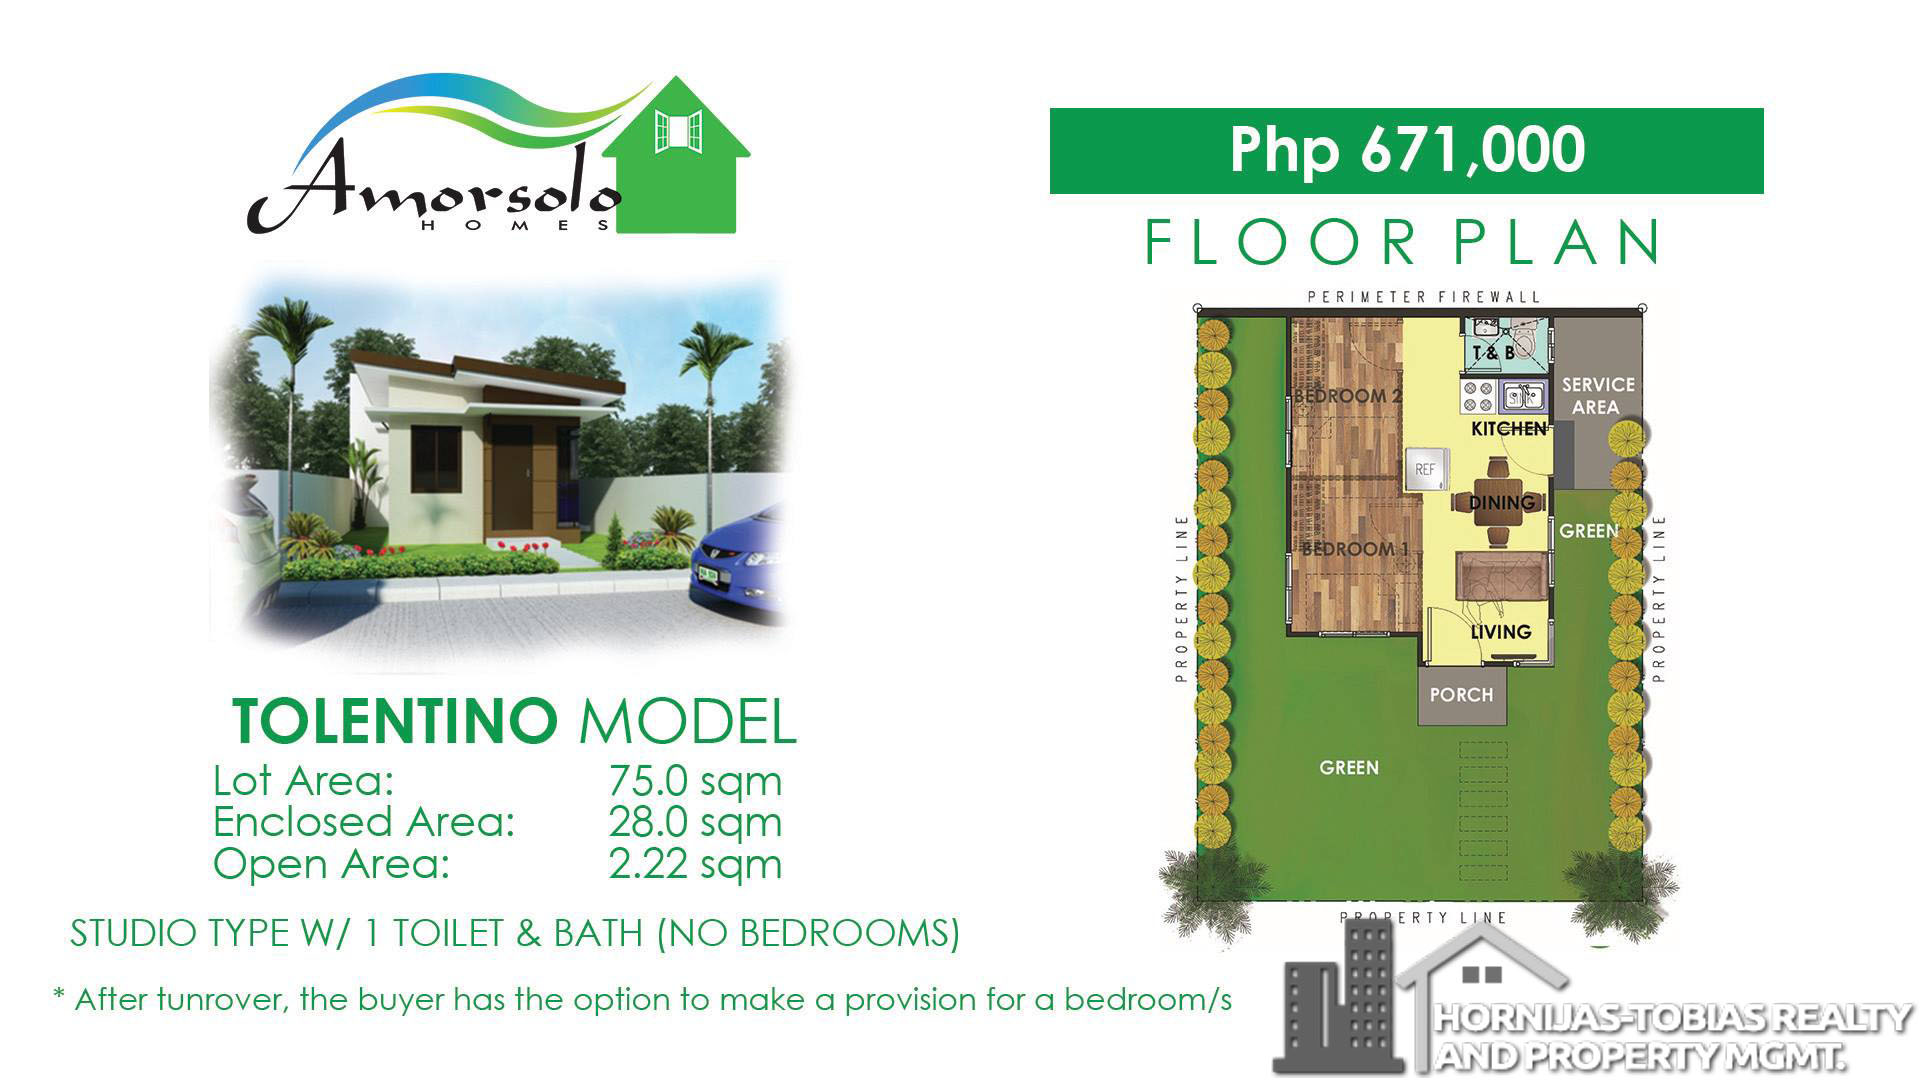 Tolentino House And Lot Package In Amorsolo Homes Davao